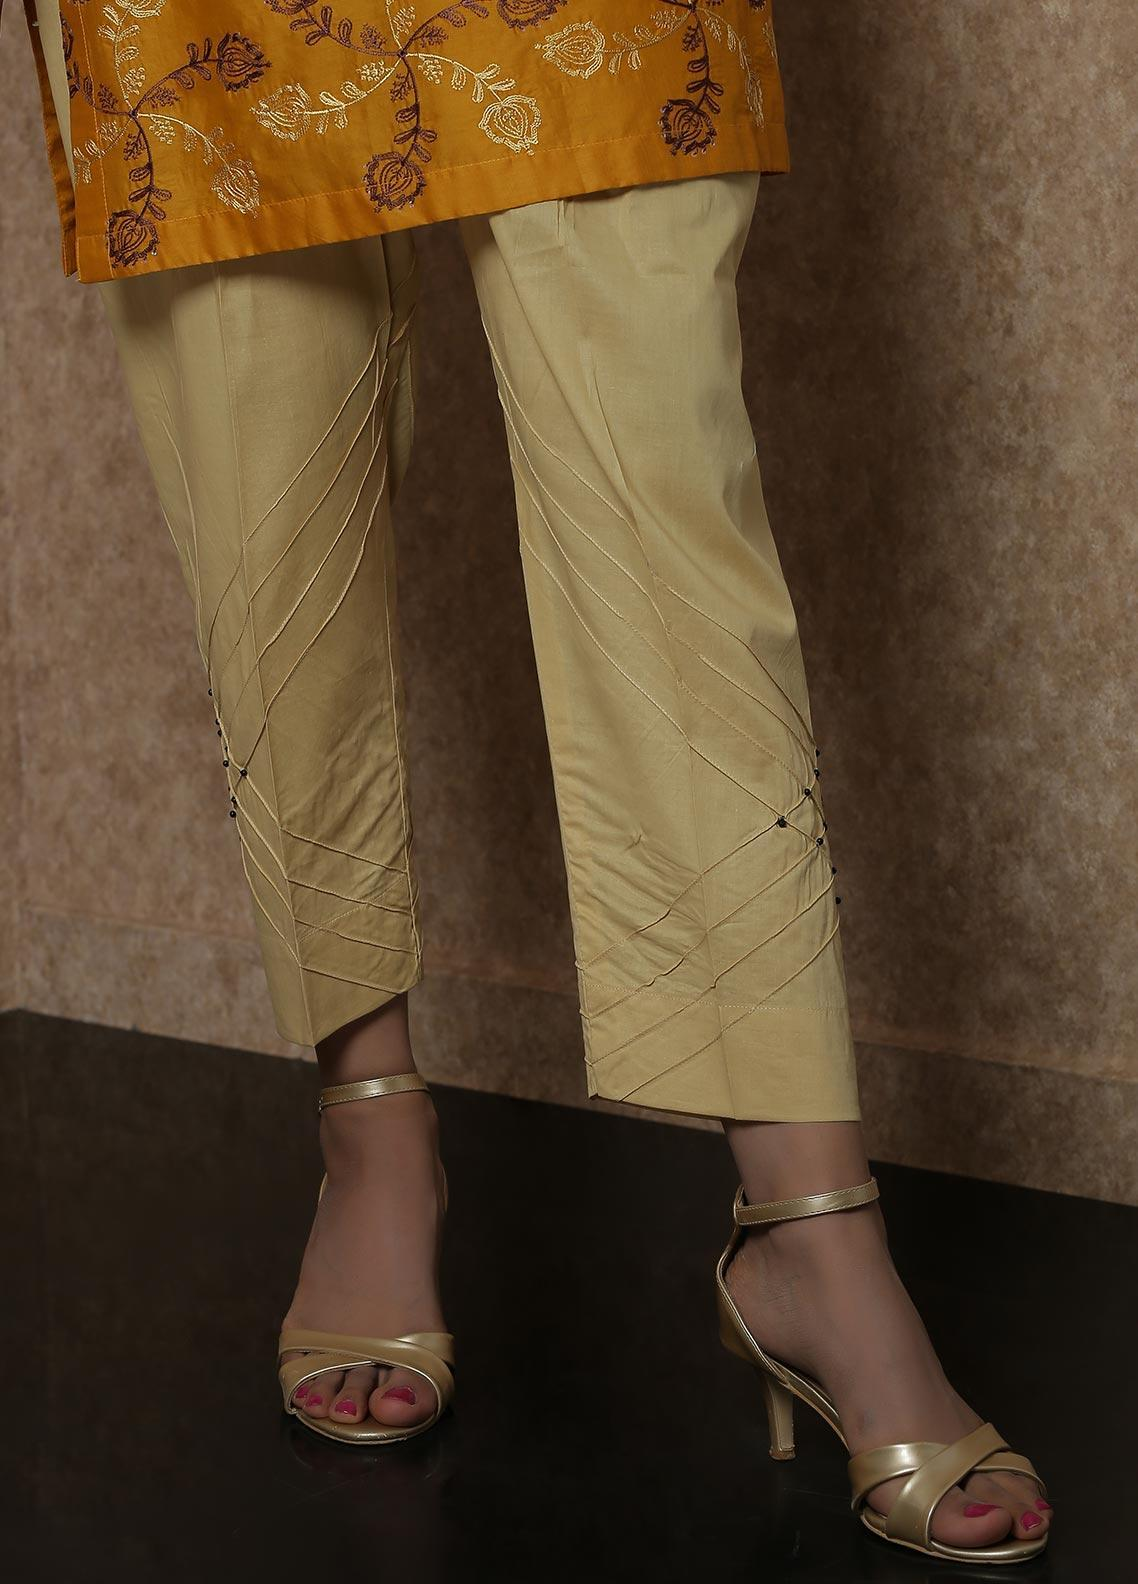 Addee Pret Embroidered Lawn Stitched Trousers Ladies Trouser V4-S20-T025 Skin-S